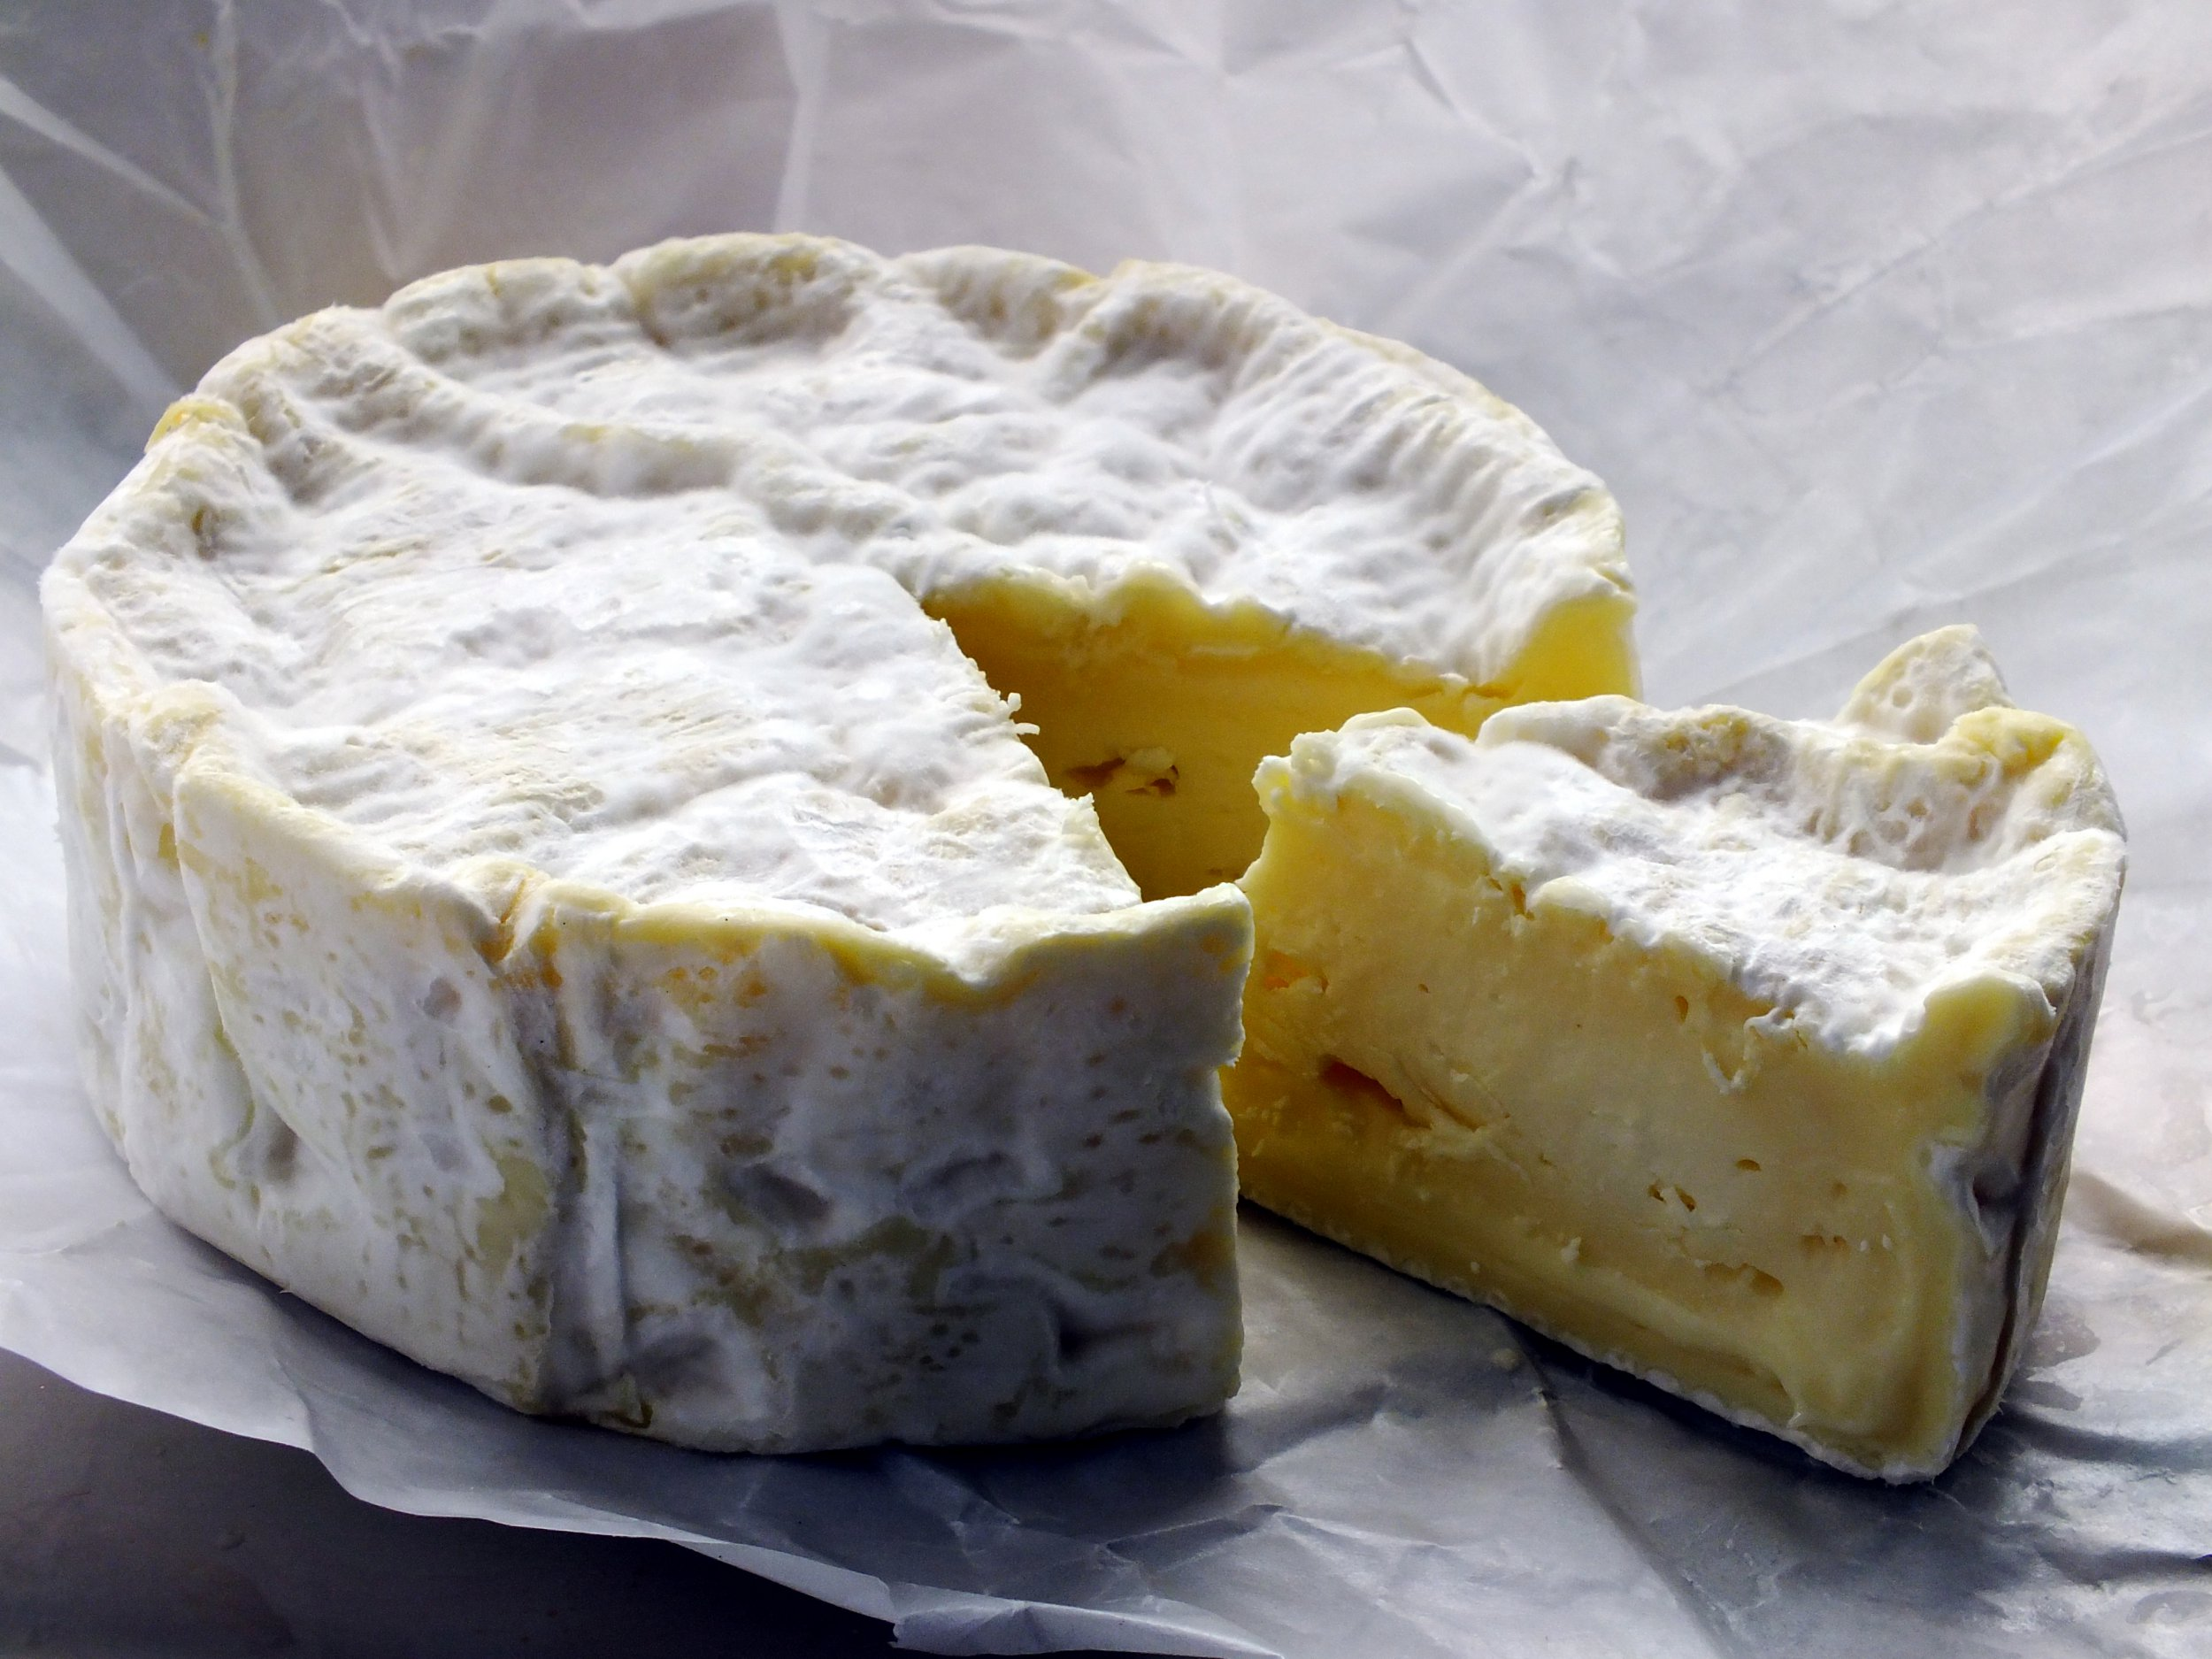 While Britain battles over Brexit the French are arguing about cheese